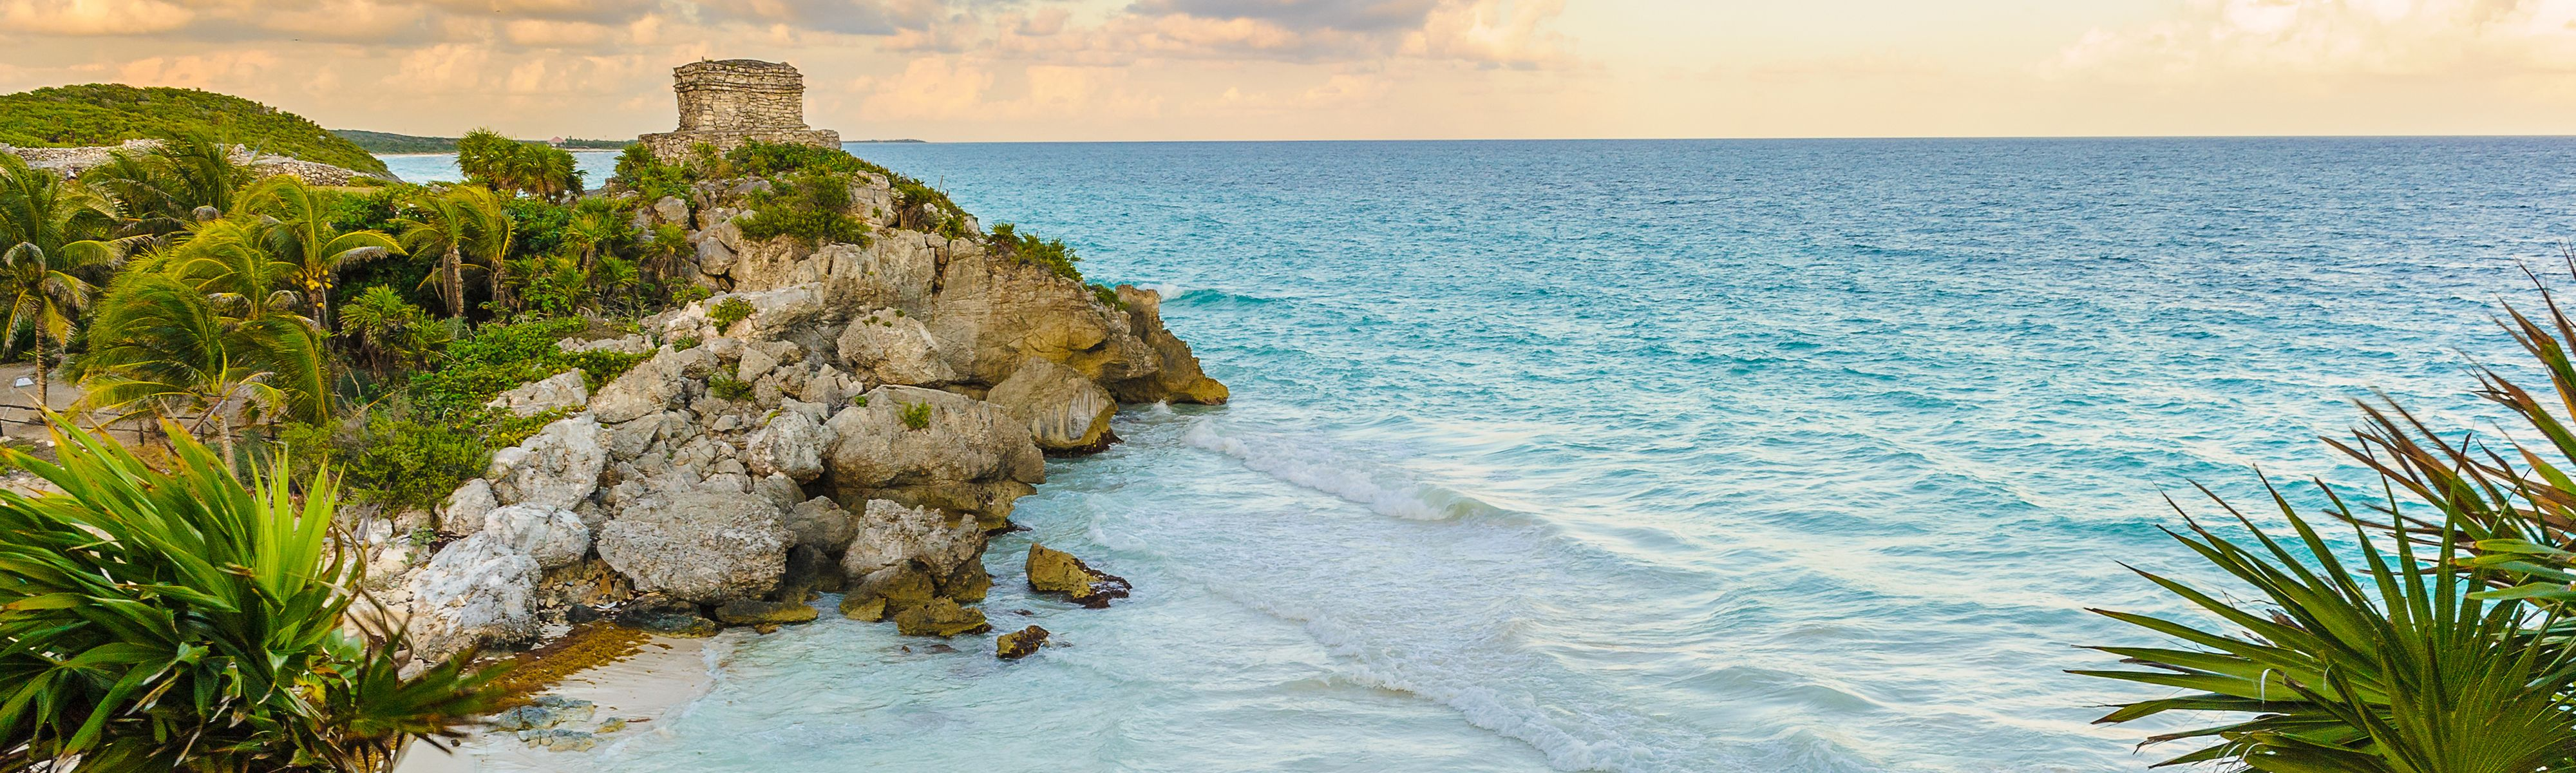 Coast of ocean in Tulum, Mexico with view of Mayan Ruins site